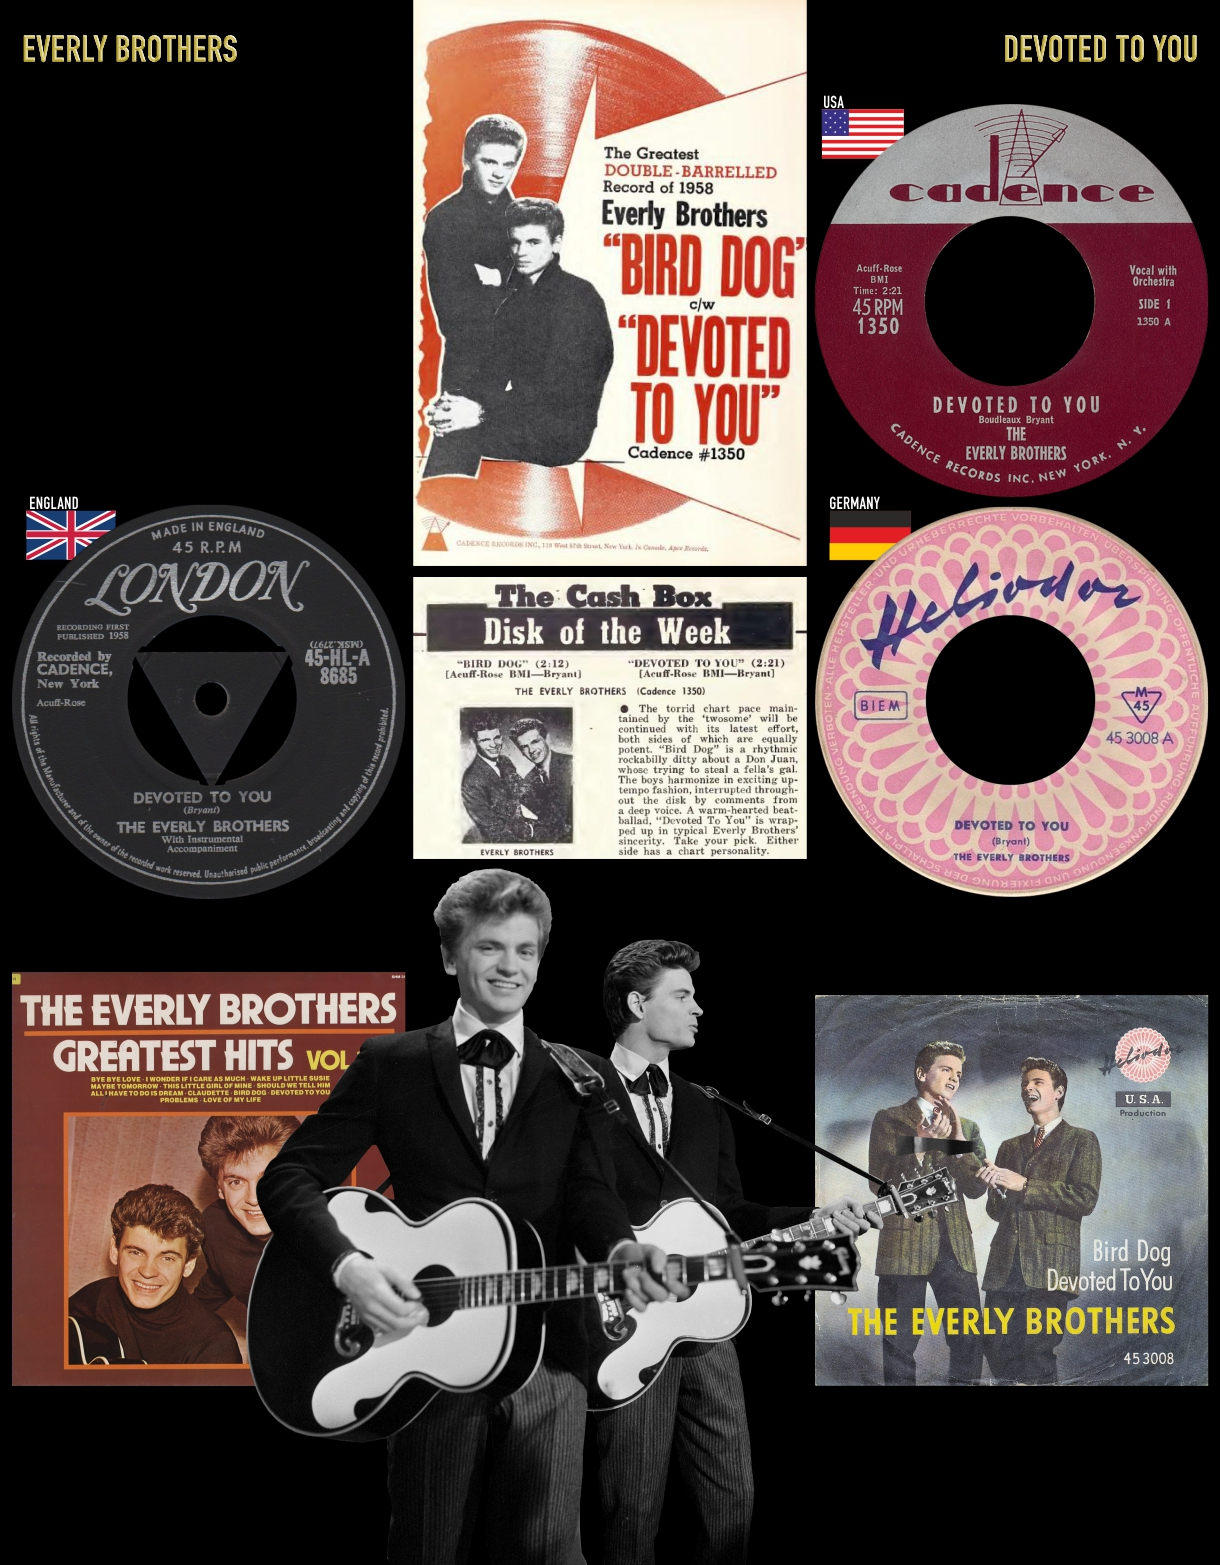 580809_Everly Brothers_Devoted To You